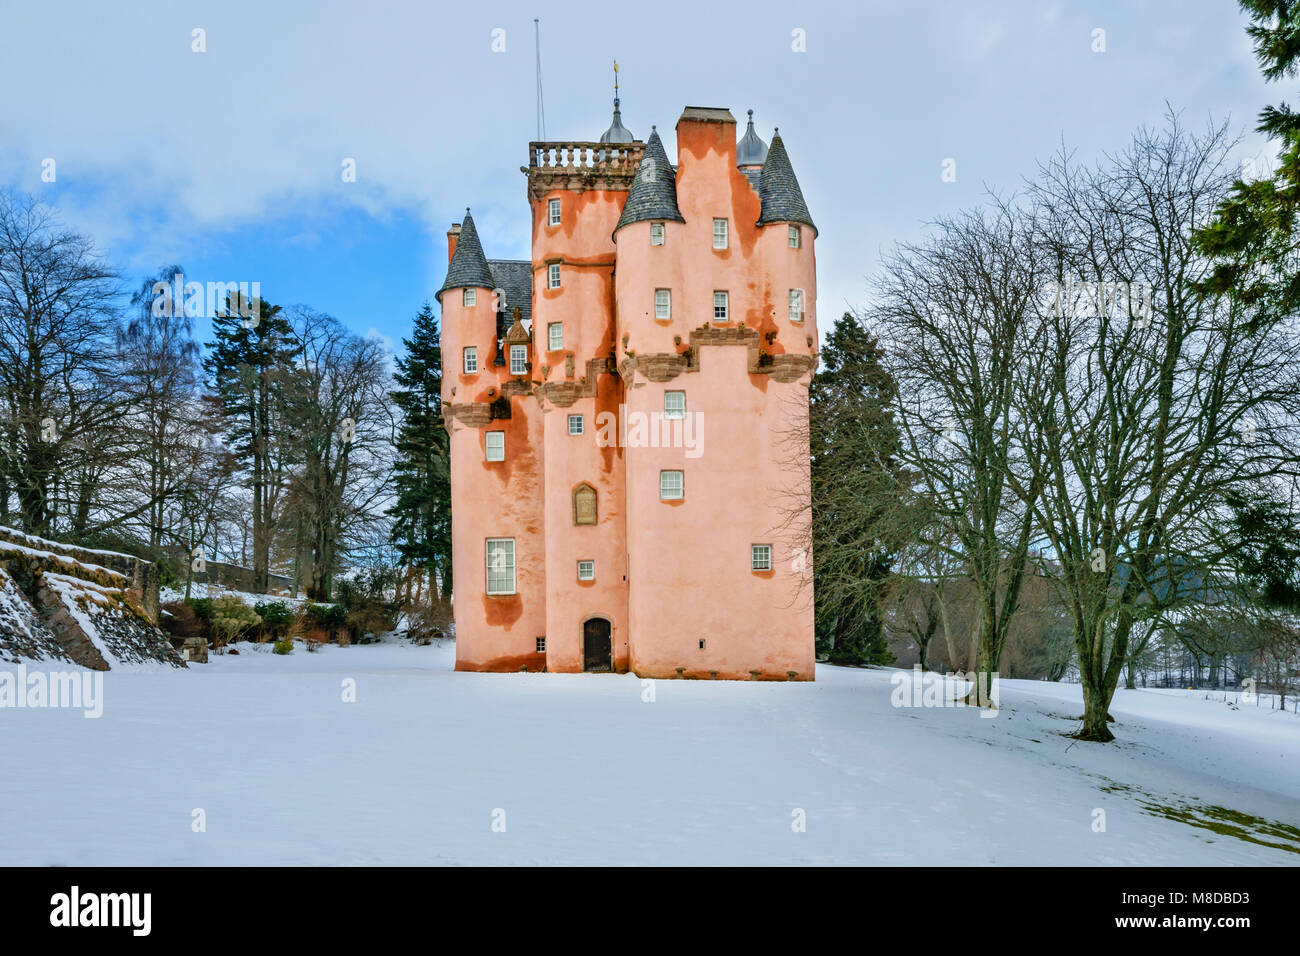 CRAIGIEVAR CASTLE ABERDEENSHIRE SCOTLAND WITH THE PINK TOWER SURROUNDED BY WINTER SNOW  LEAFLESS TREES AND A SMALL - Stock Image